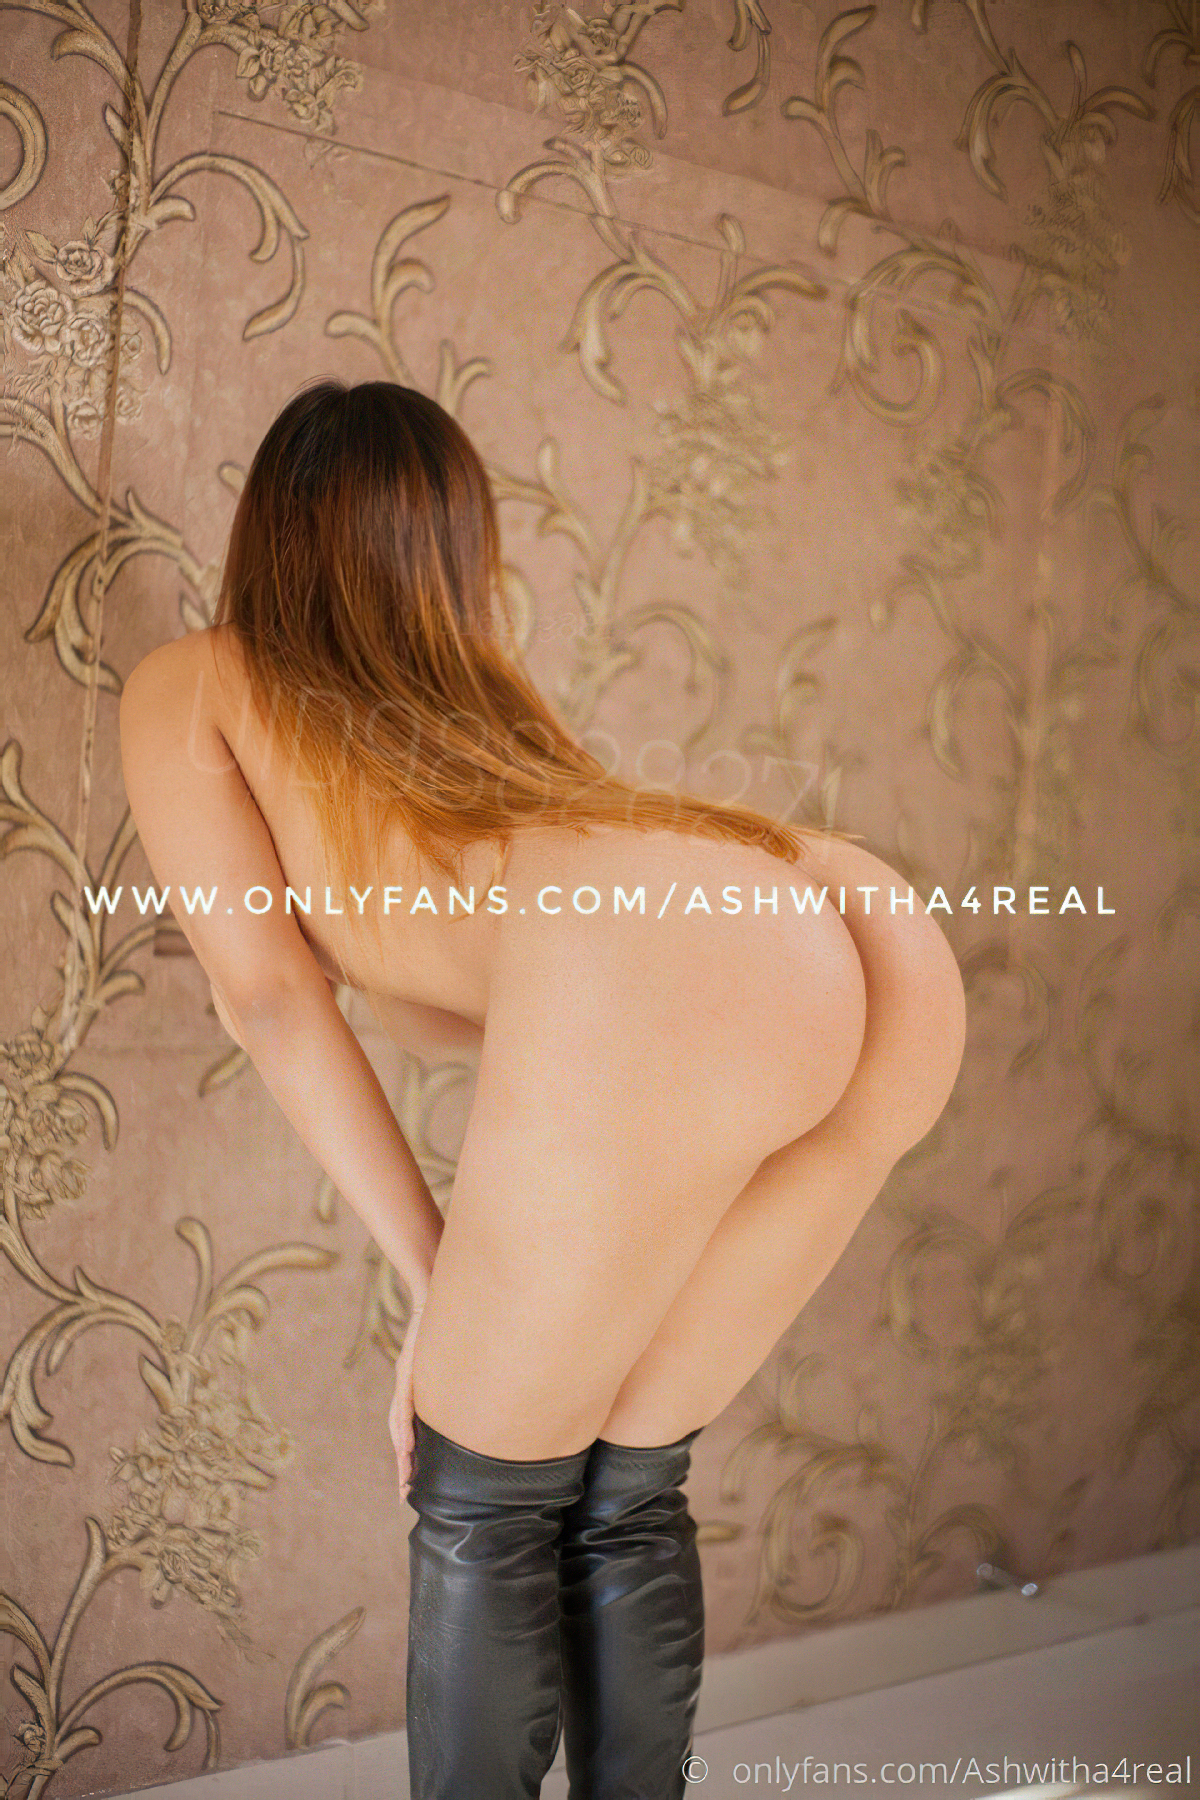 Ashwitha S – Ashwitha4real Onlyfans Nudes Leaks 7